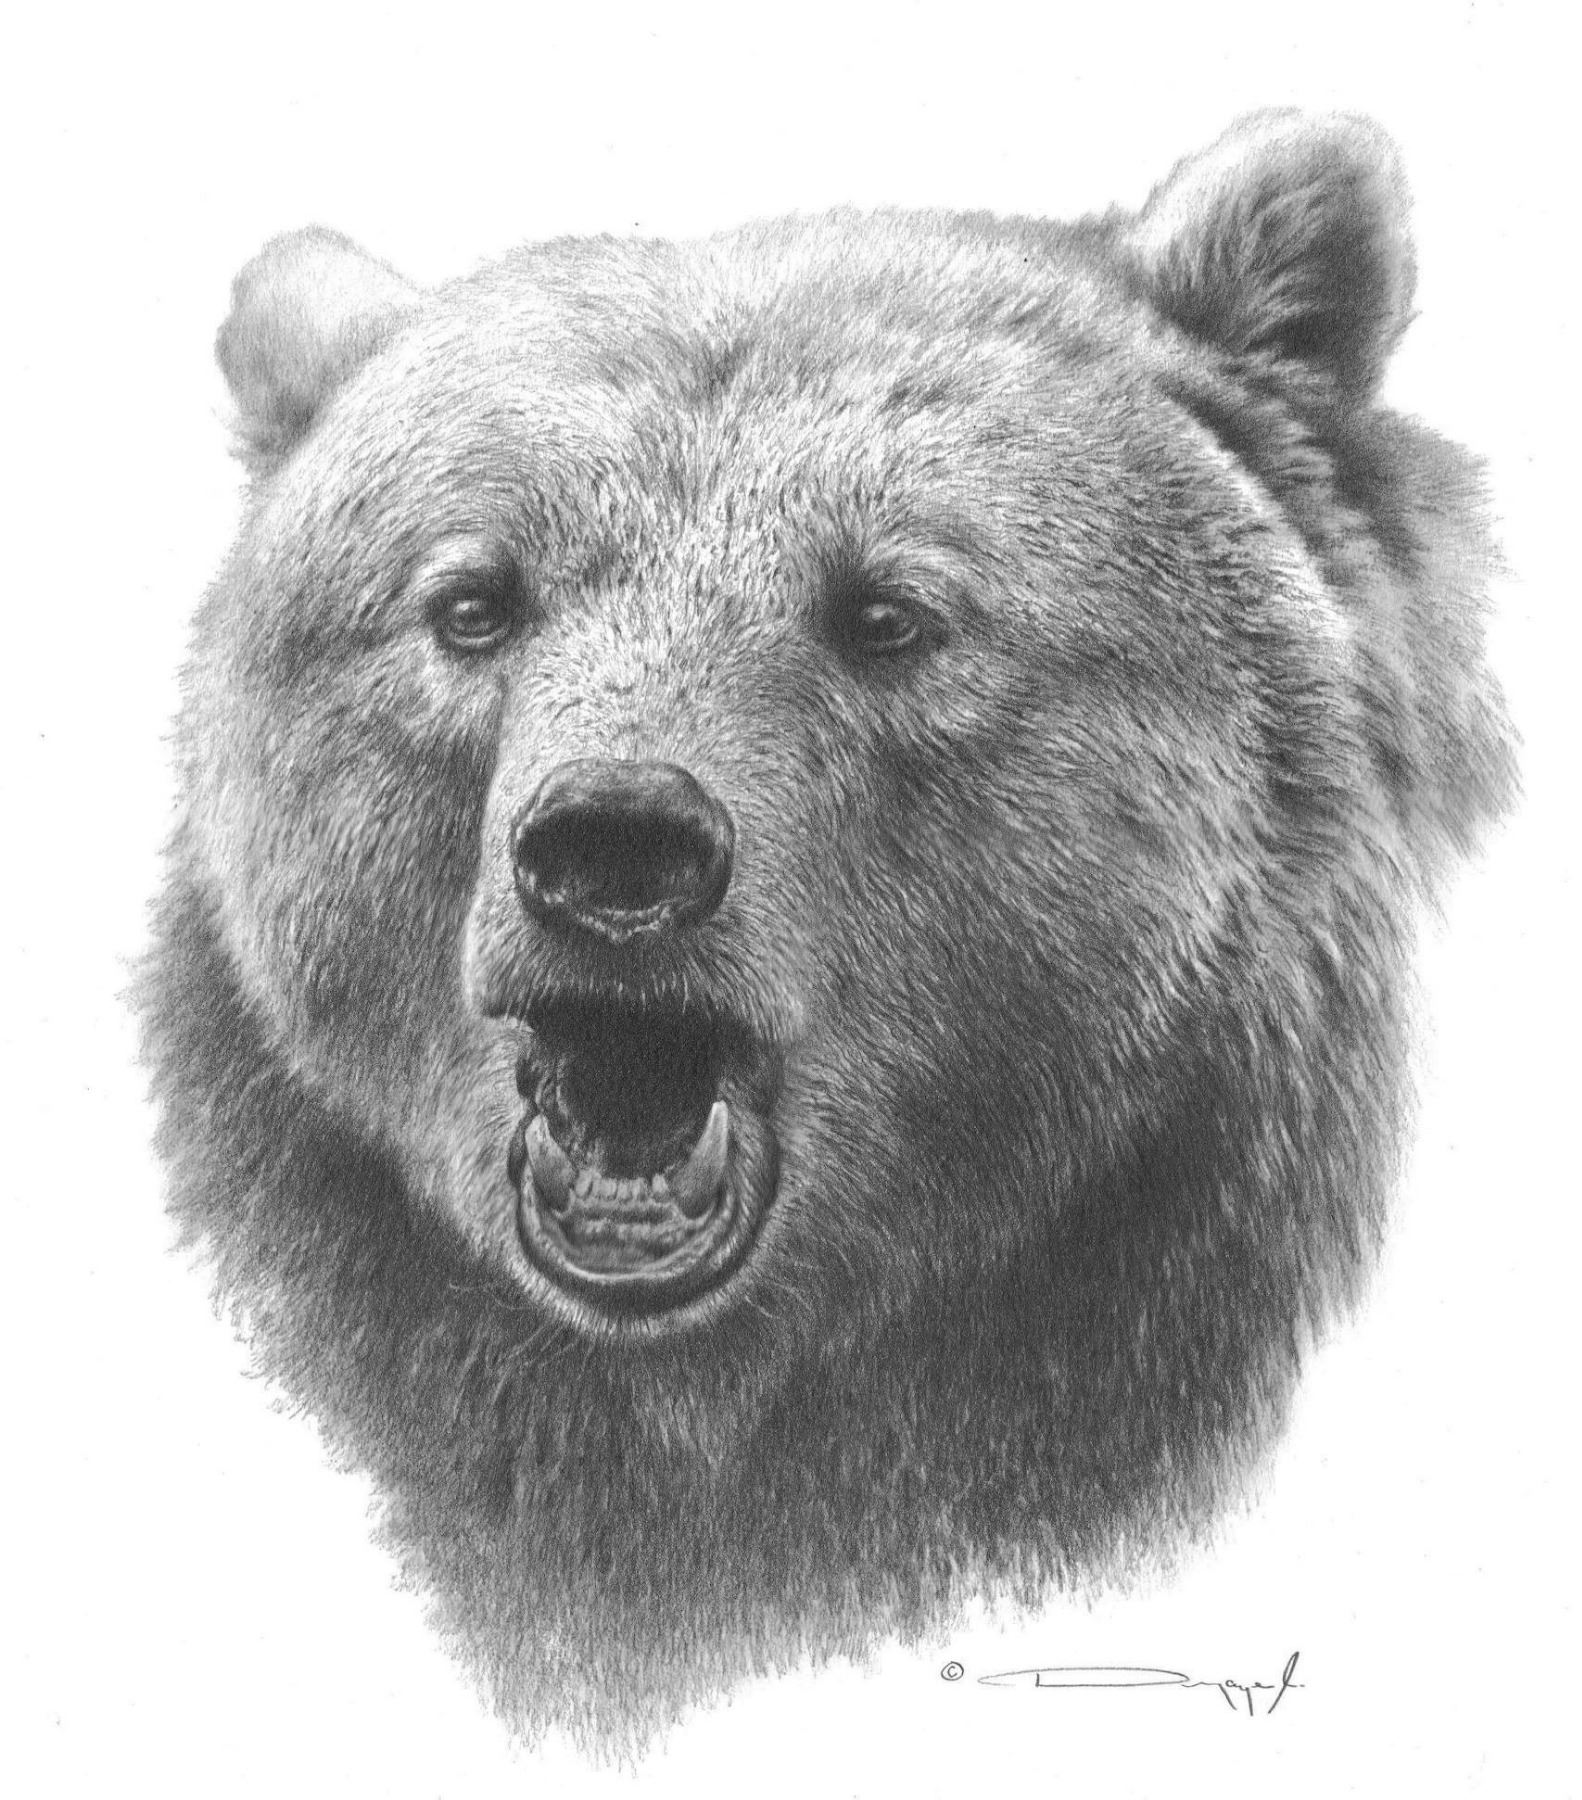 Grizzly bear original pencil drawing by dennis mayer jr valued at 600 00